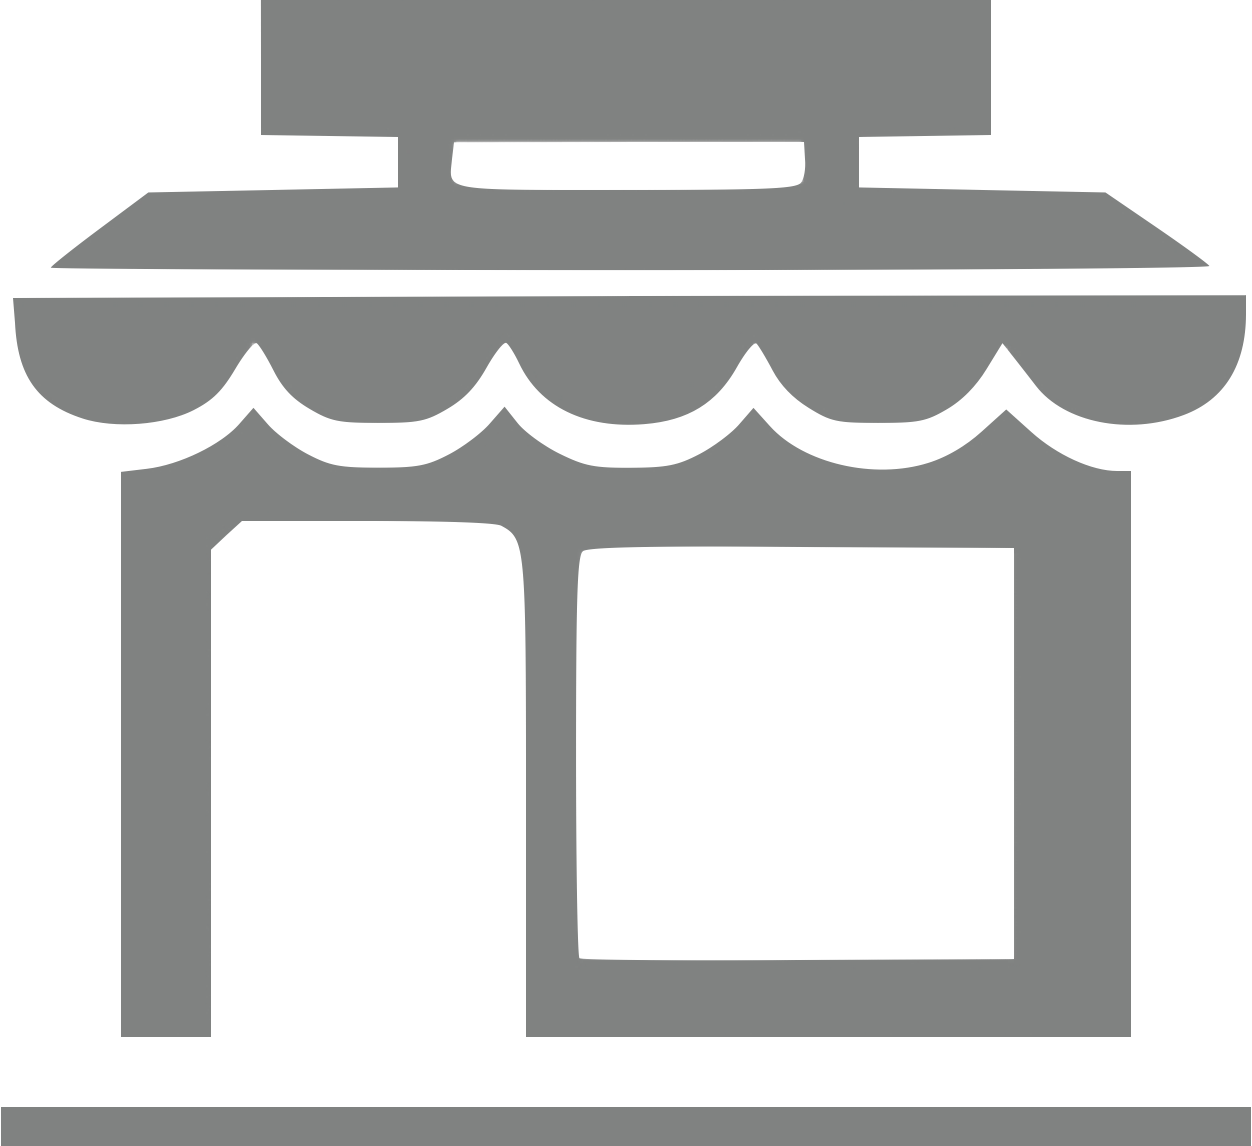 Store Logo Transparent